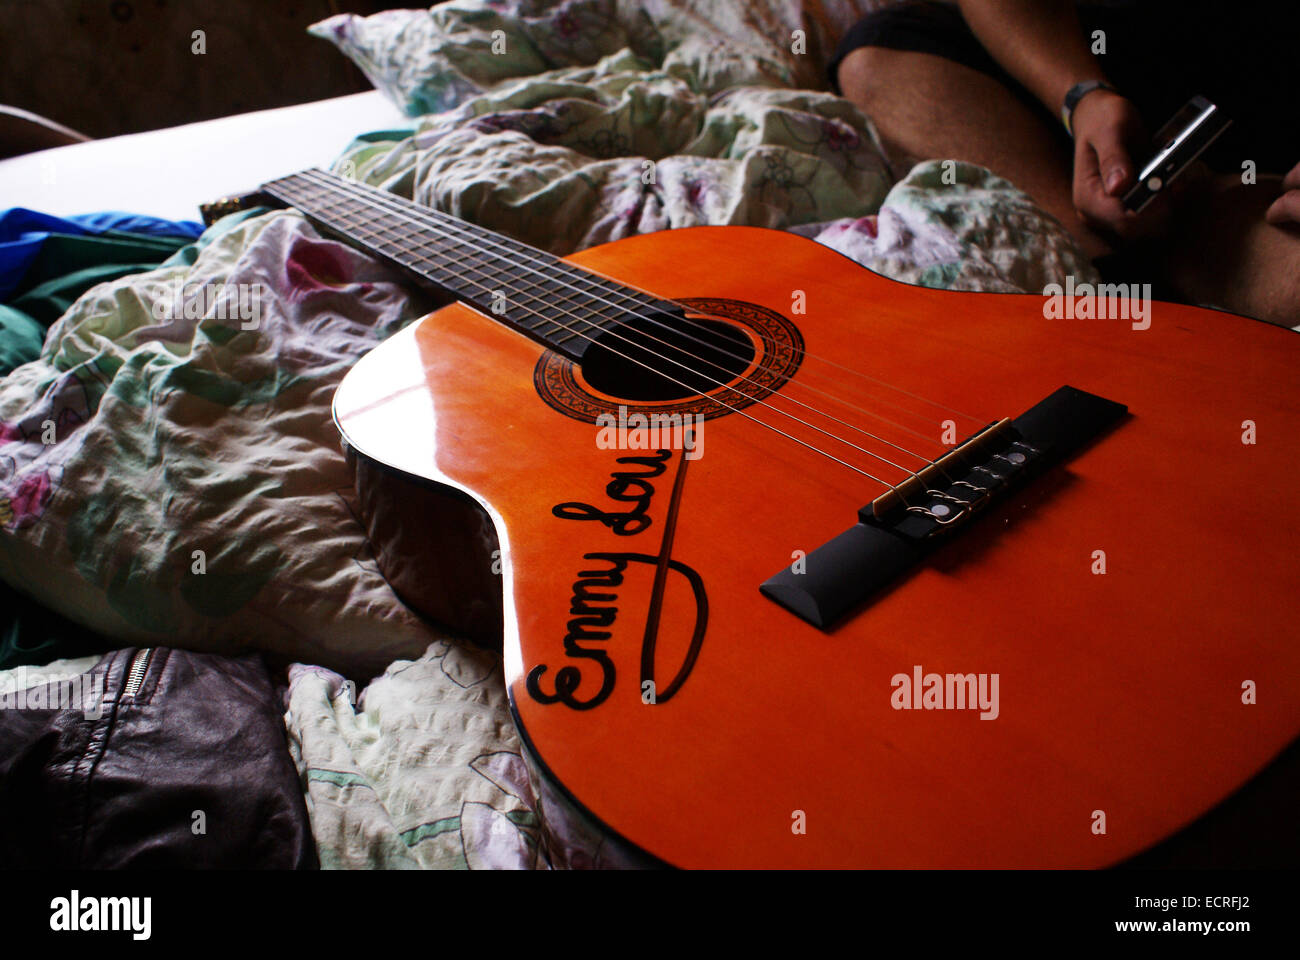 An Acoustic Guitar With The Name Emmy Lou Inscribed Sits On A Bed